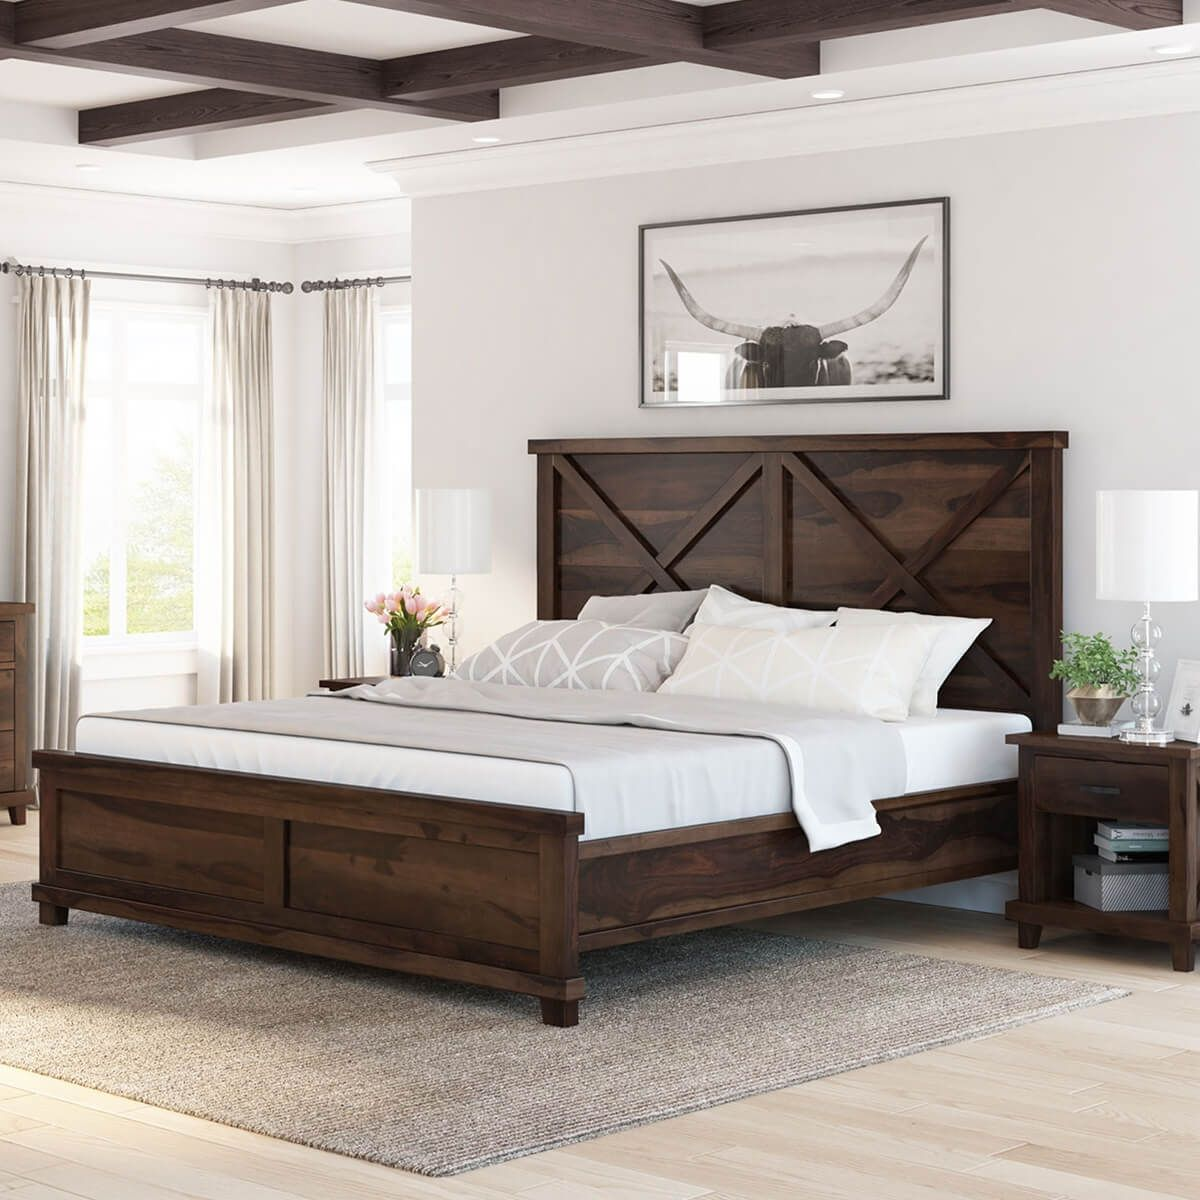 Antwerp Rustic Farmhouse Solid Wood Platform Bed Frame in